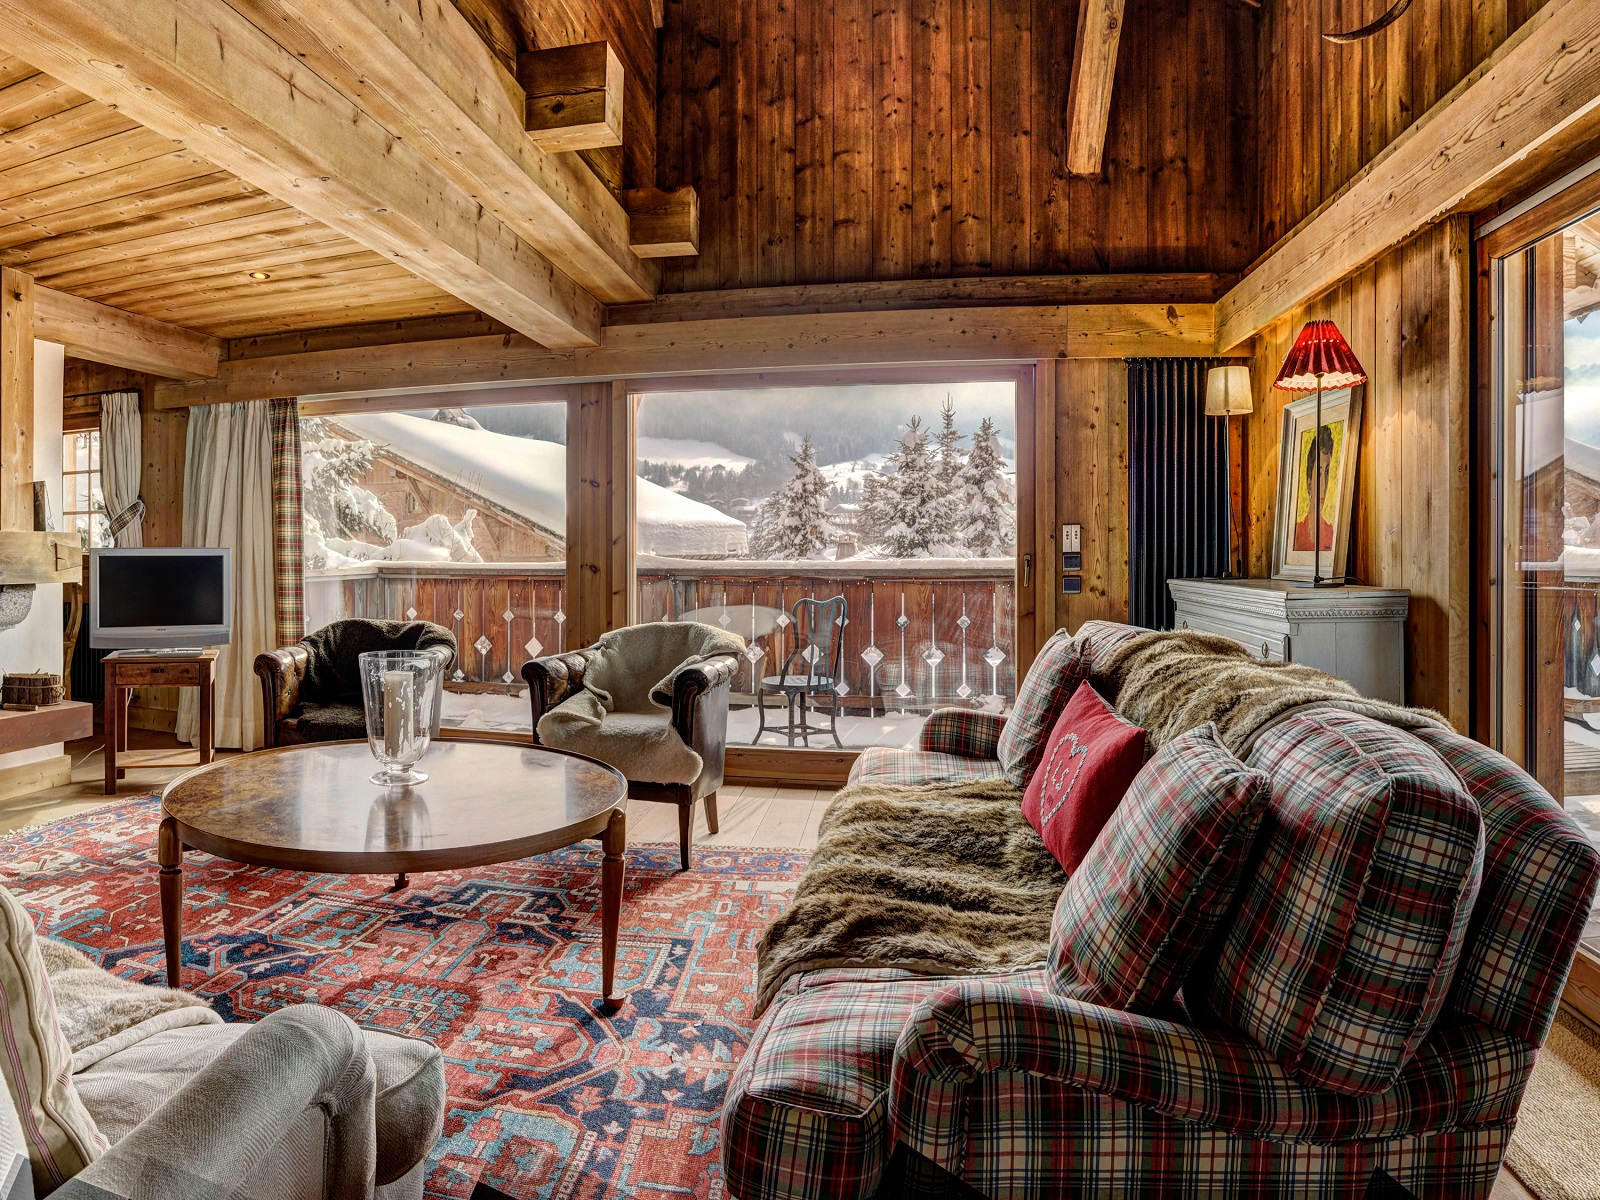 Single Family Home for Sale at Chalet Mocka Megeve, Rhone-Alpes 74120 France